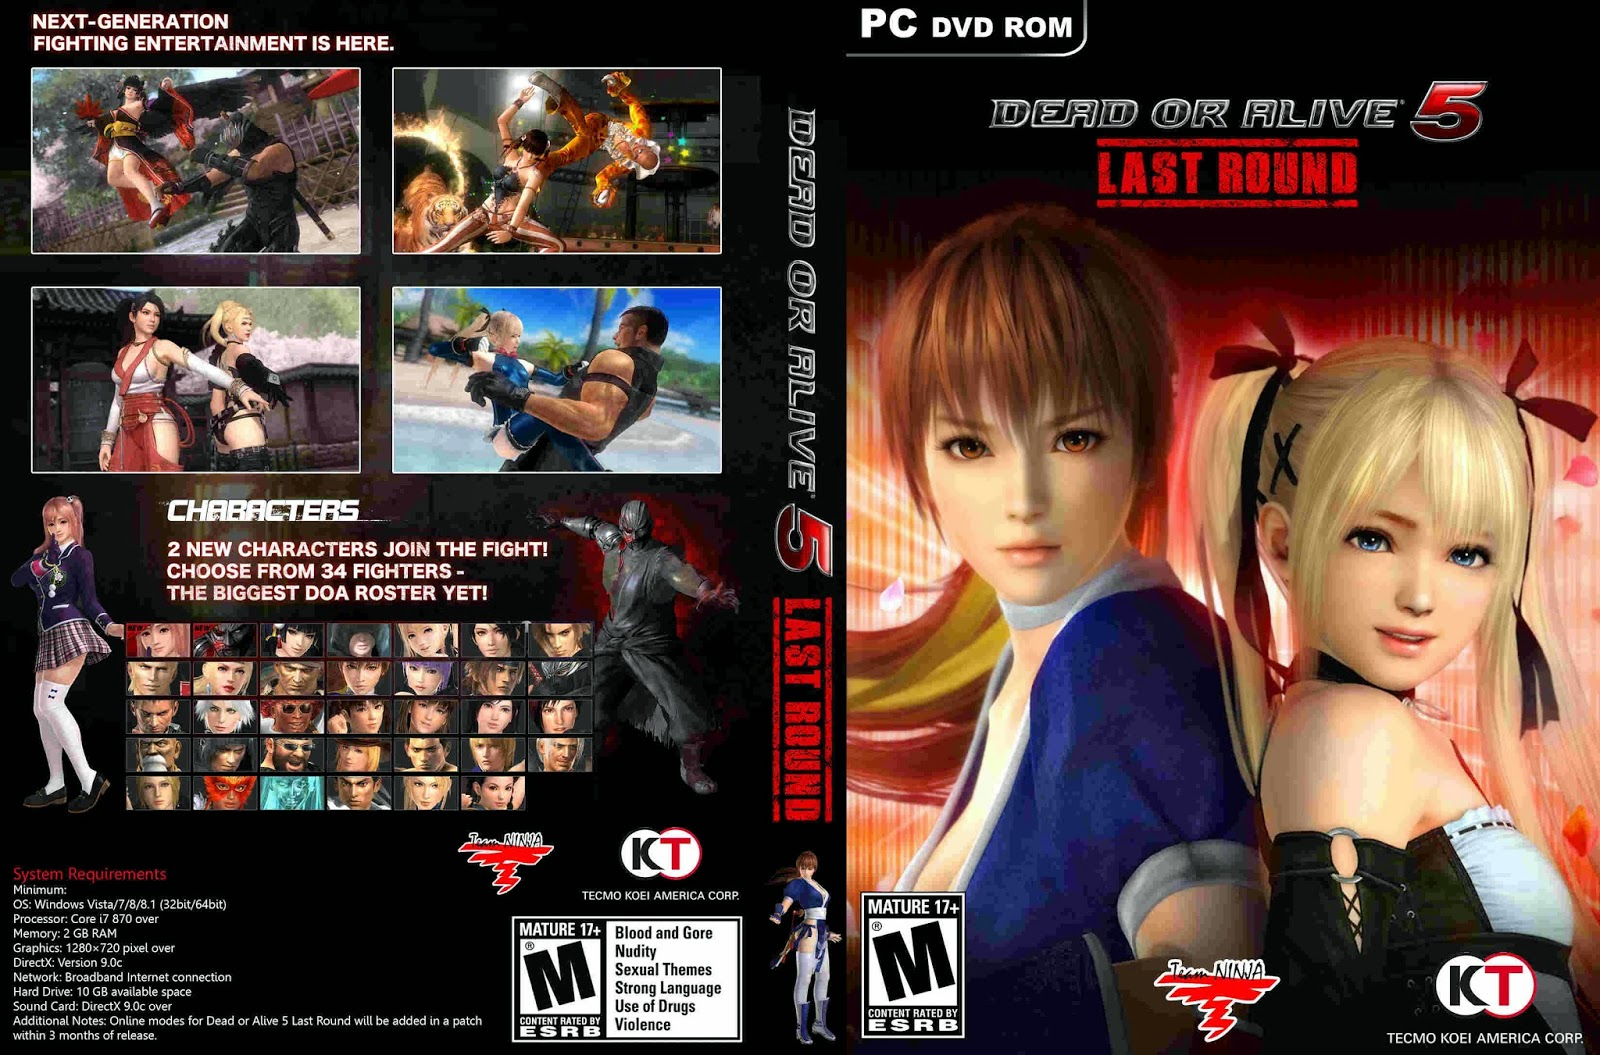 Telecharger DEAD OR ALIVE 5 Last Round PC